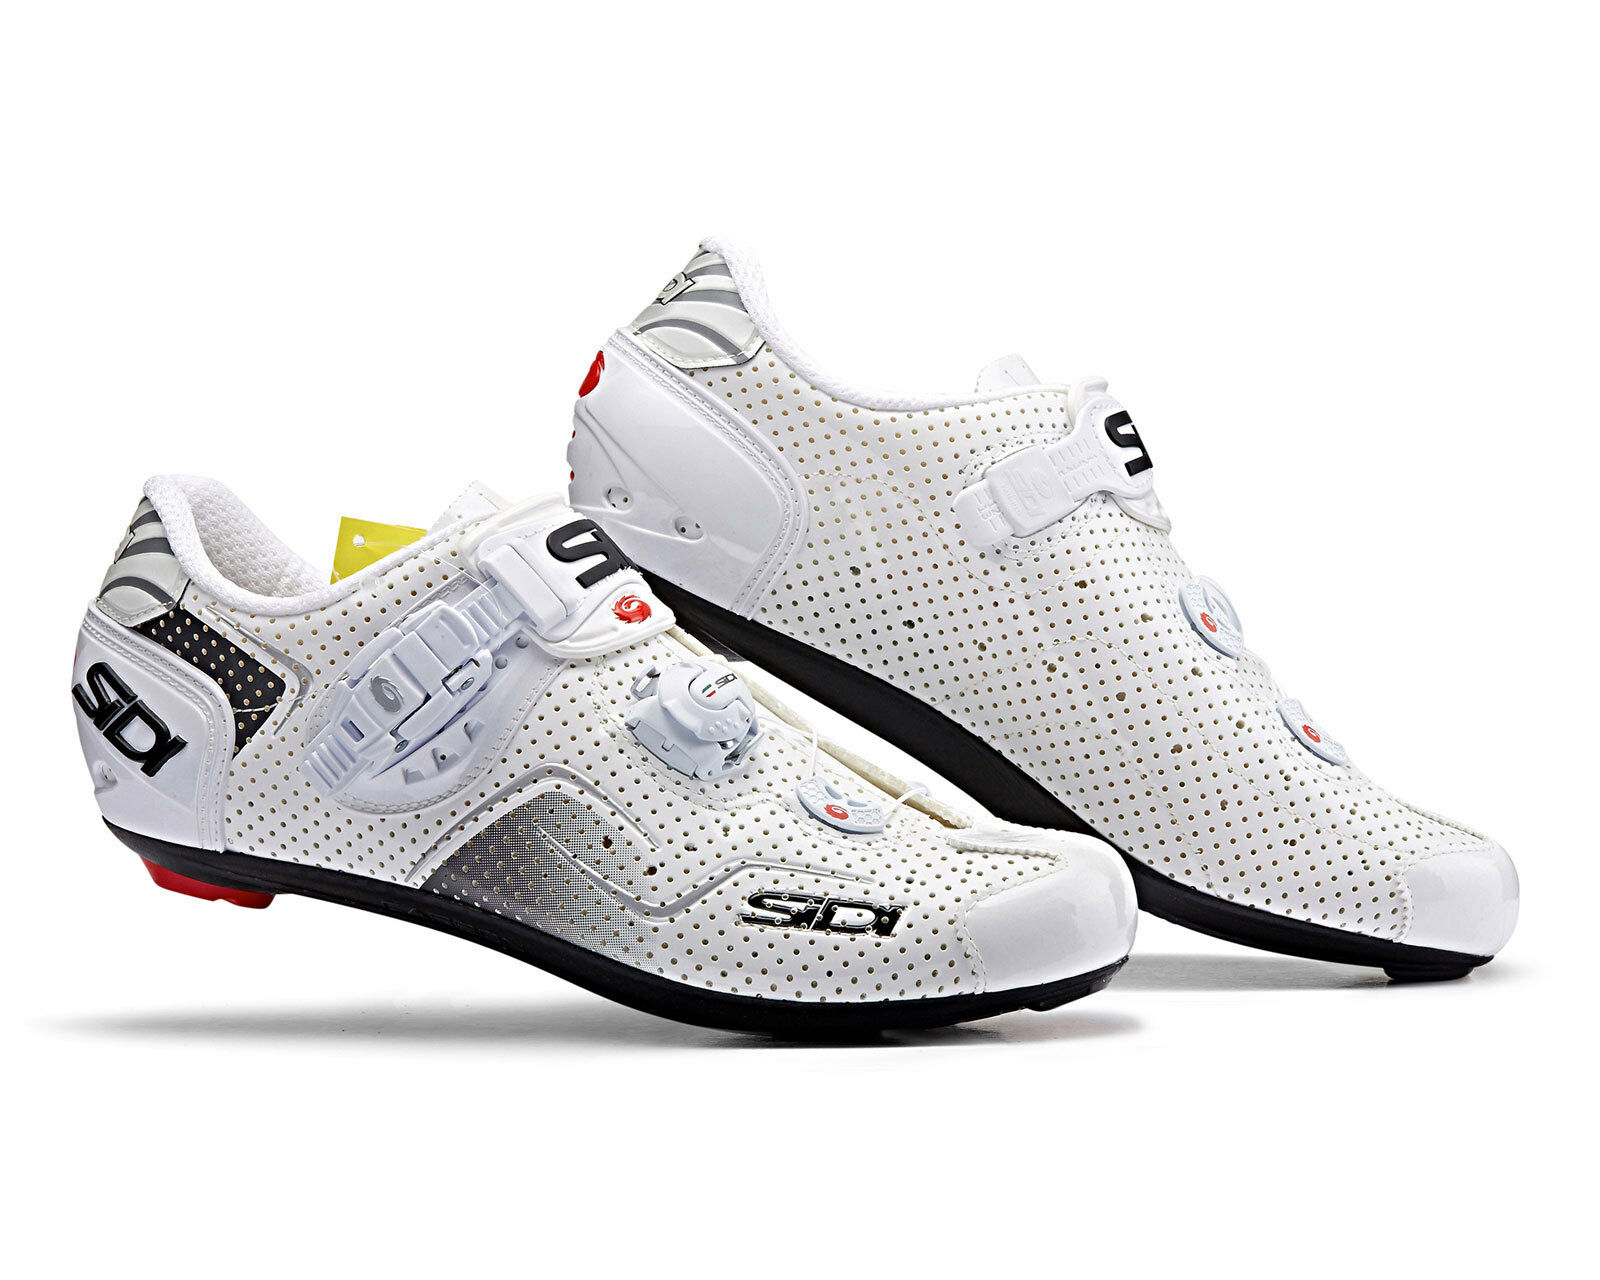 SIDI KAOS Air Road Cycling shoes - White White